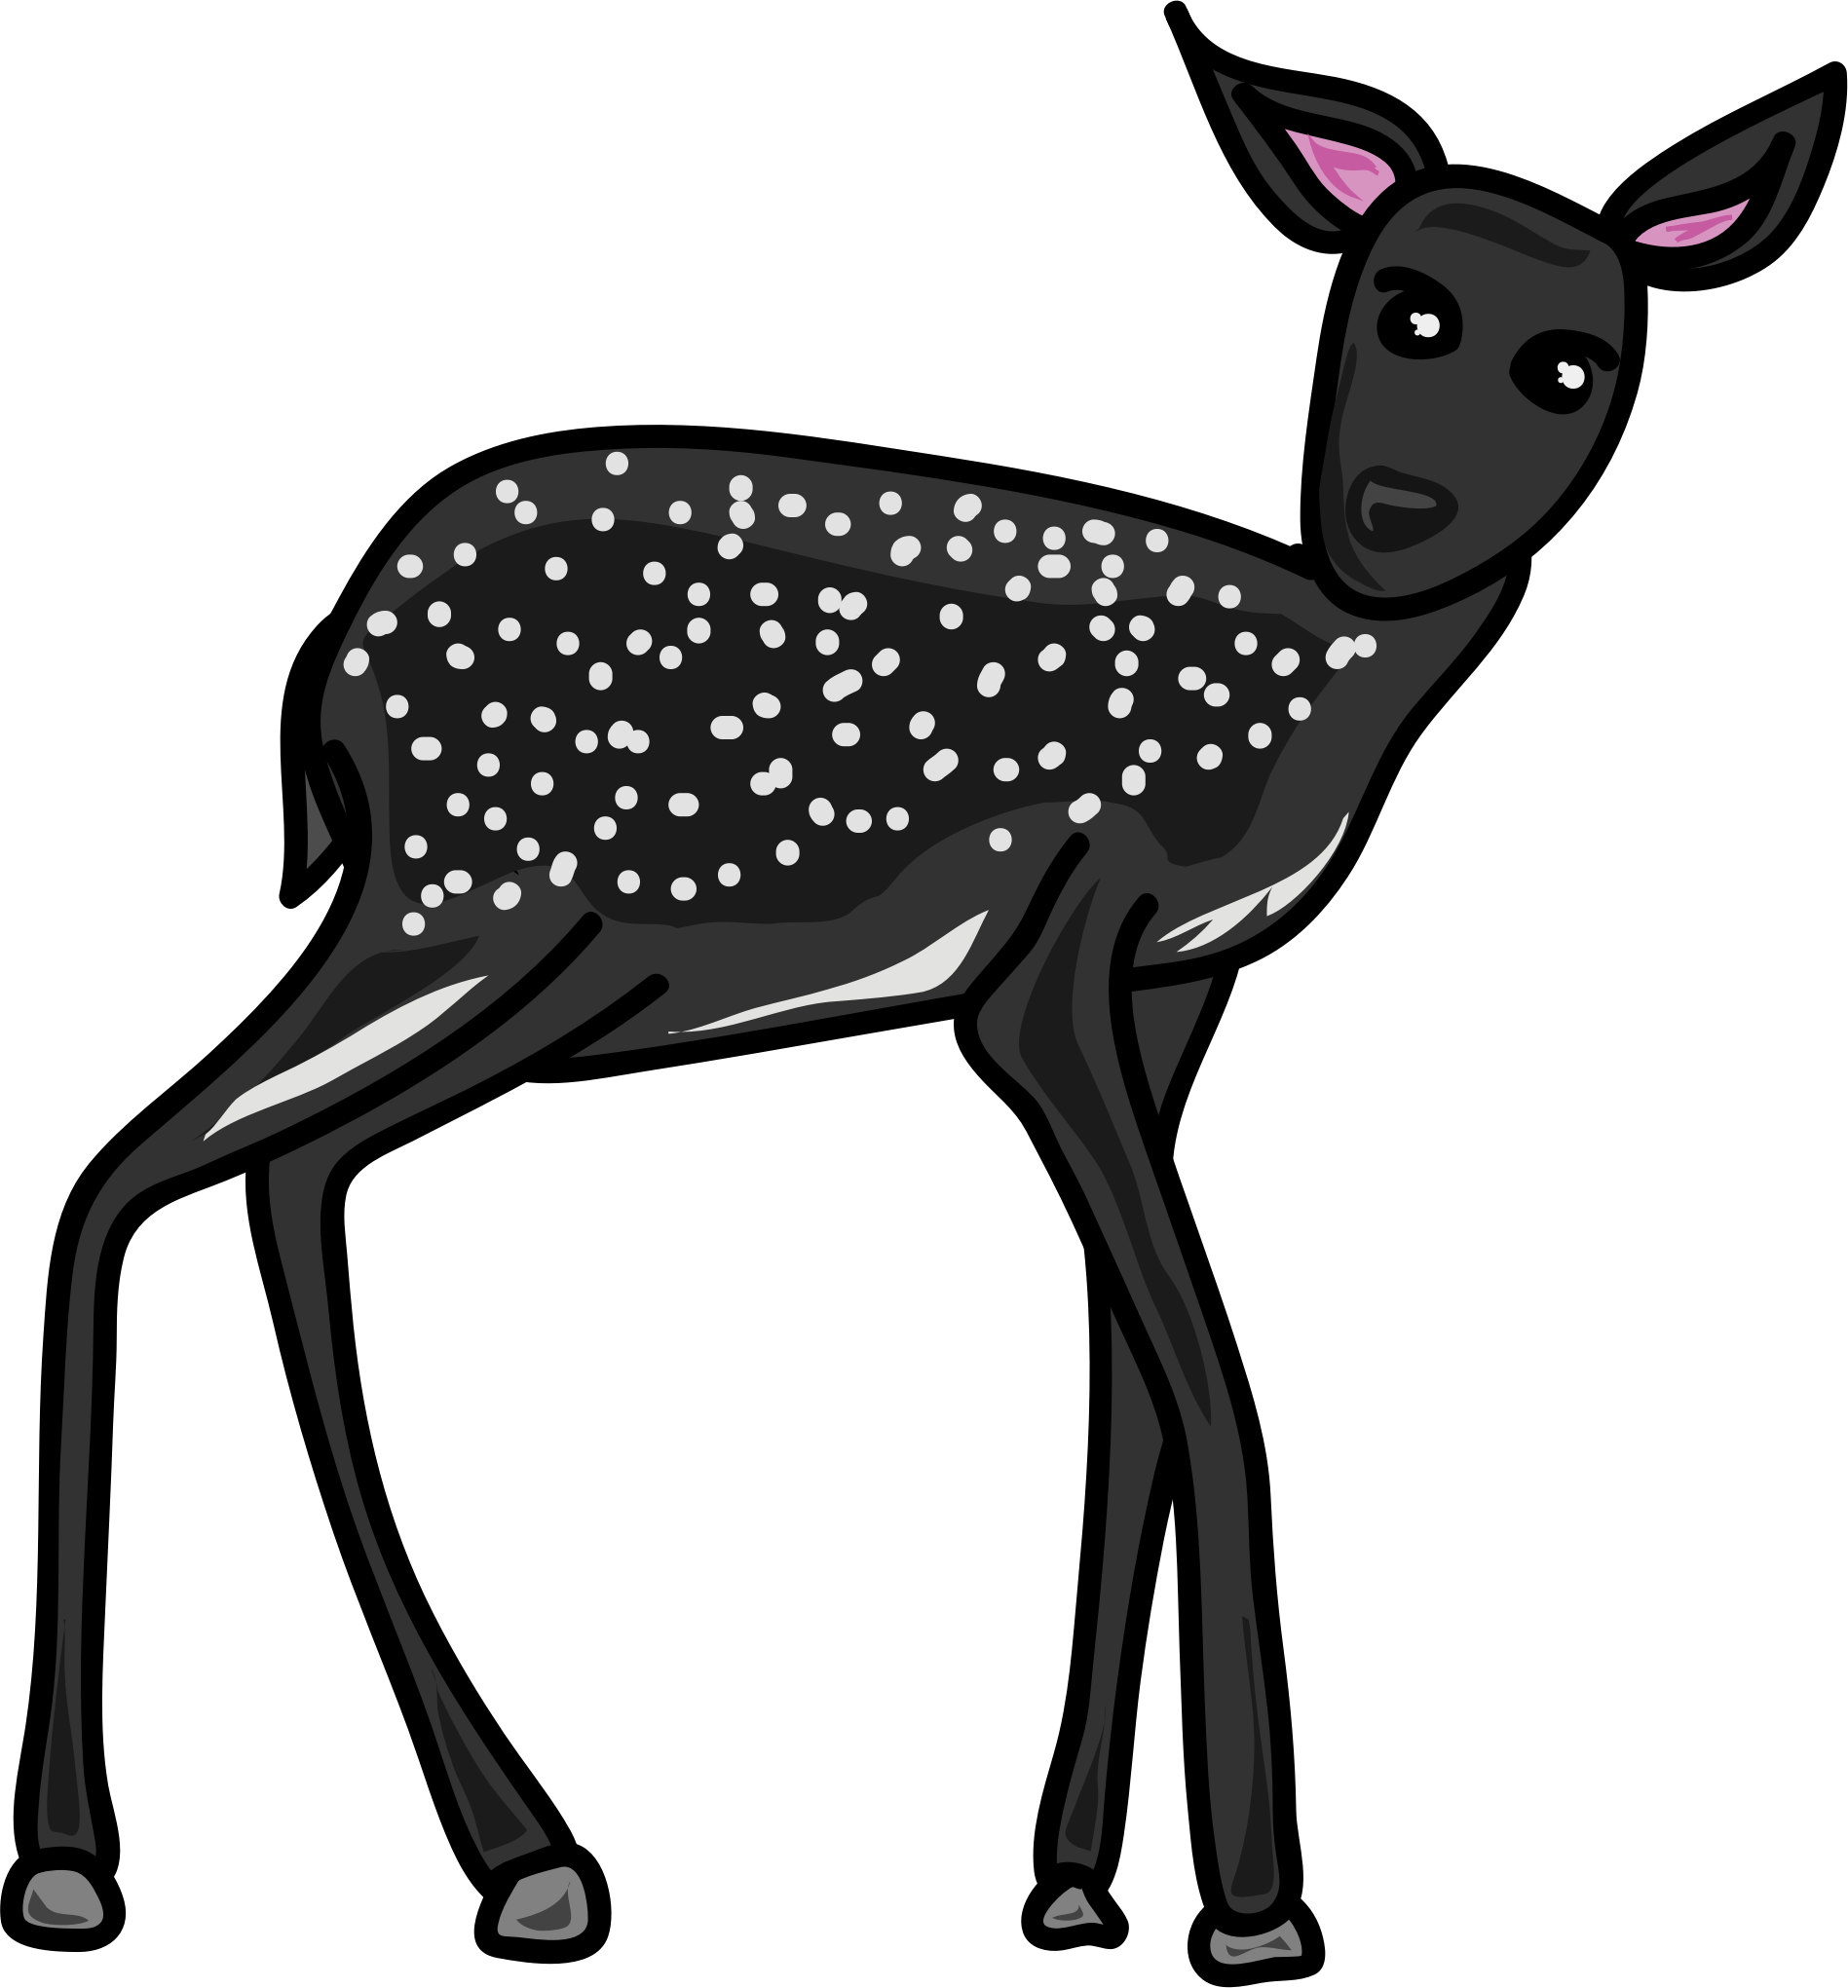 Deer Black by Mahua Sarkar